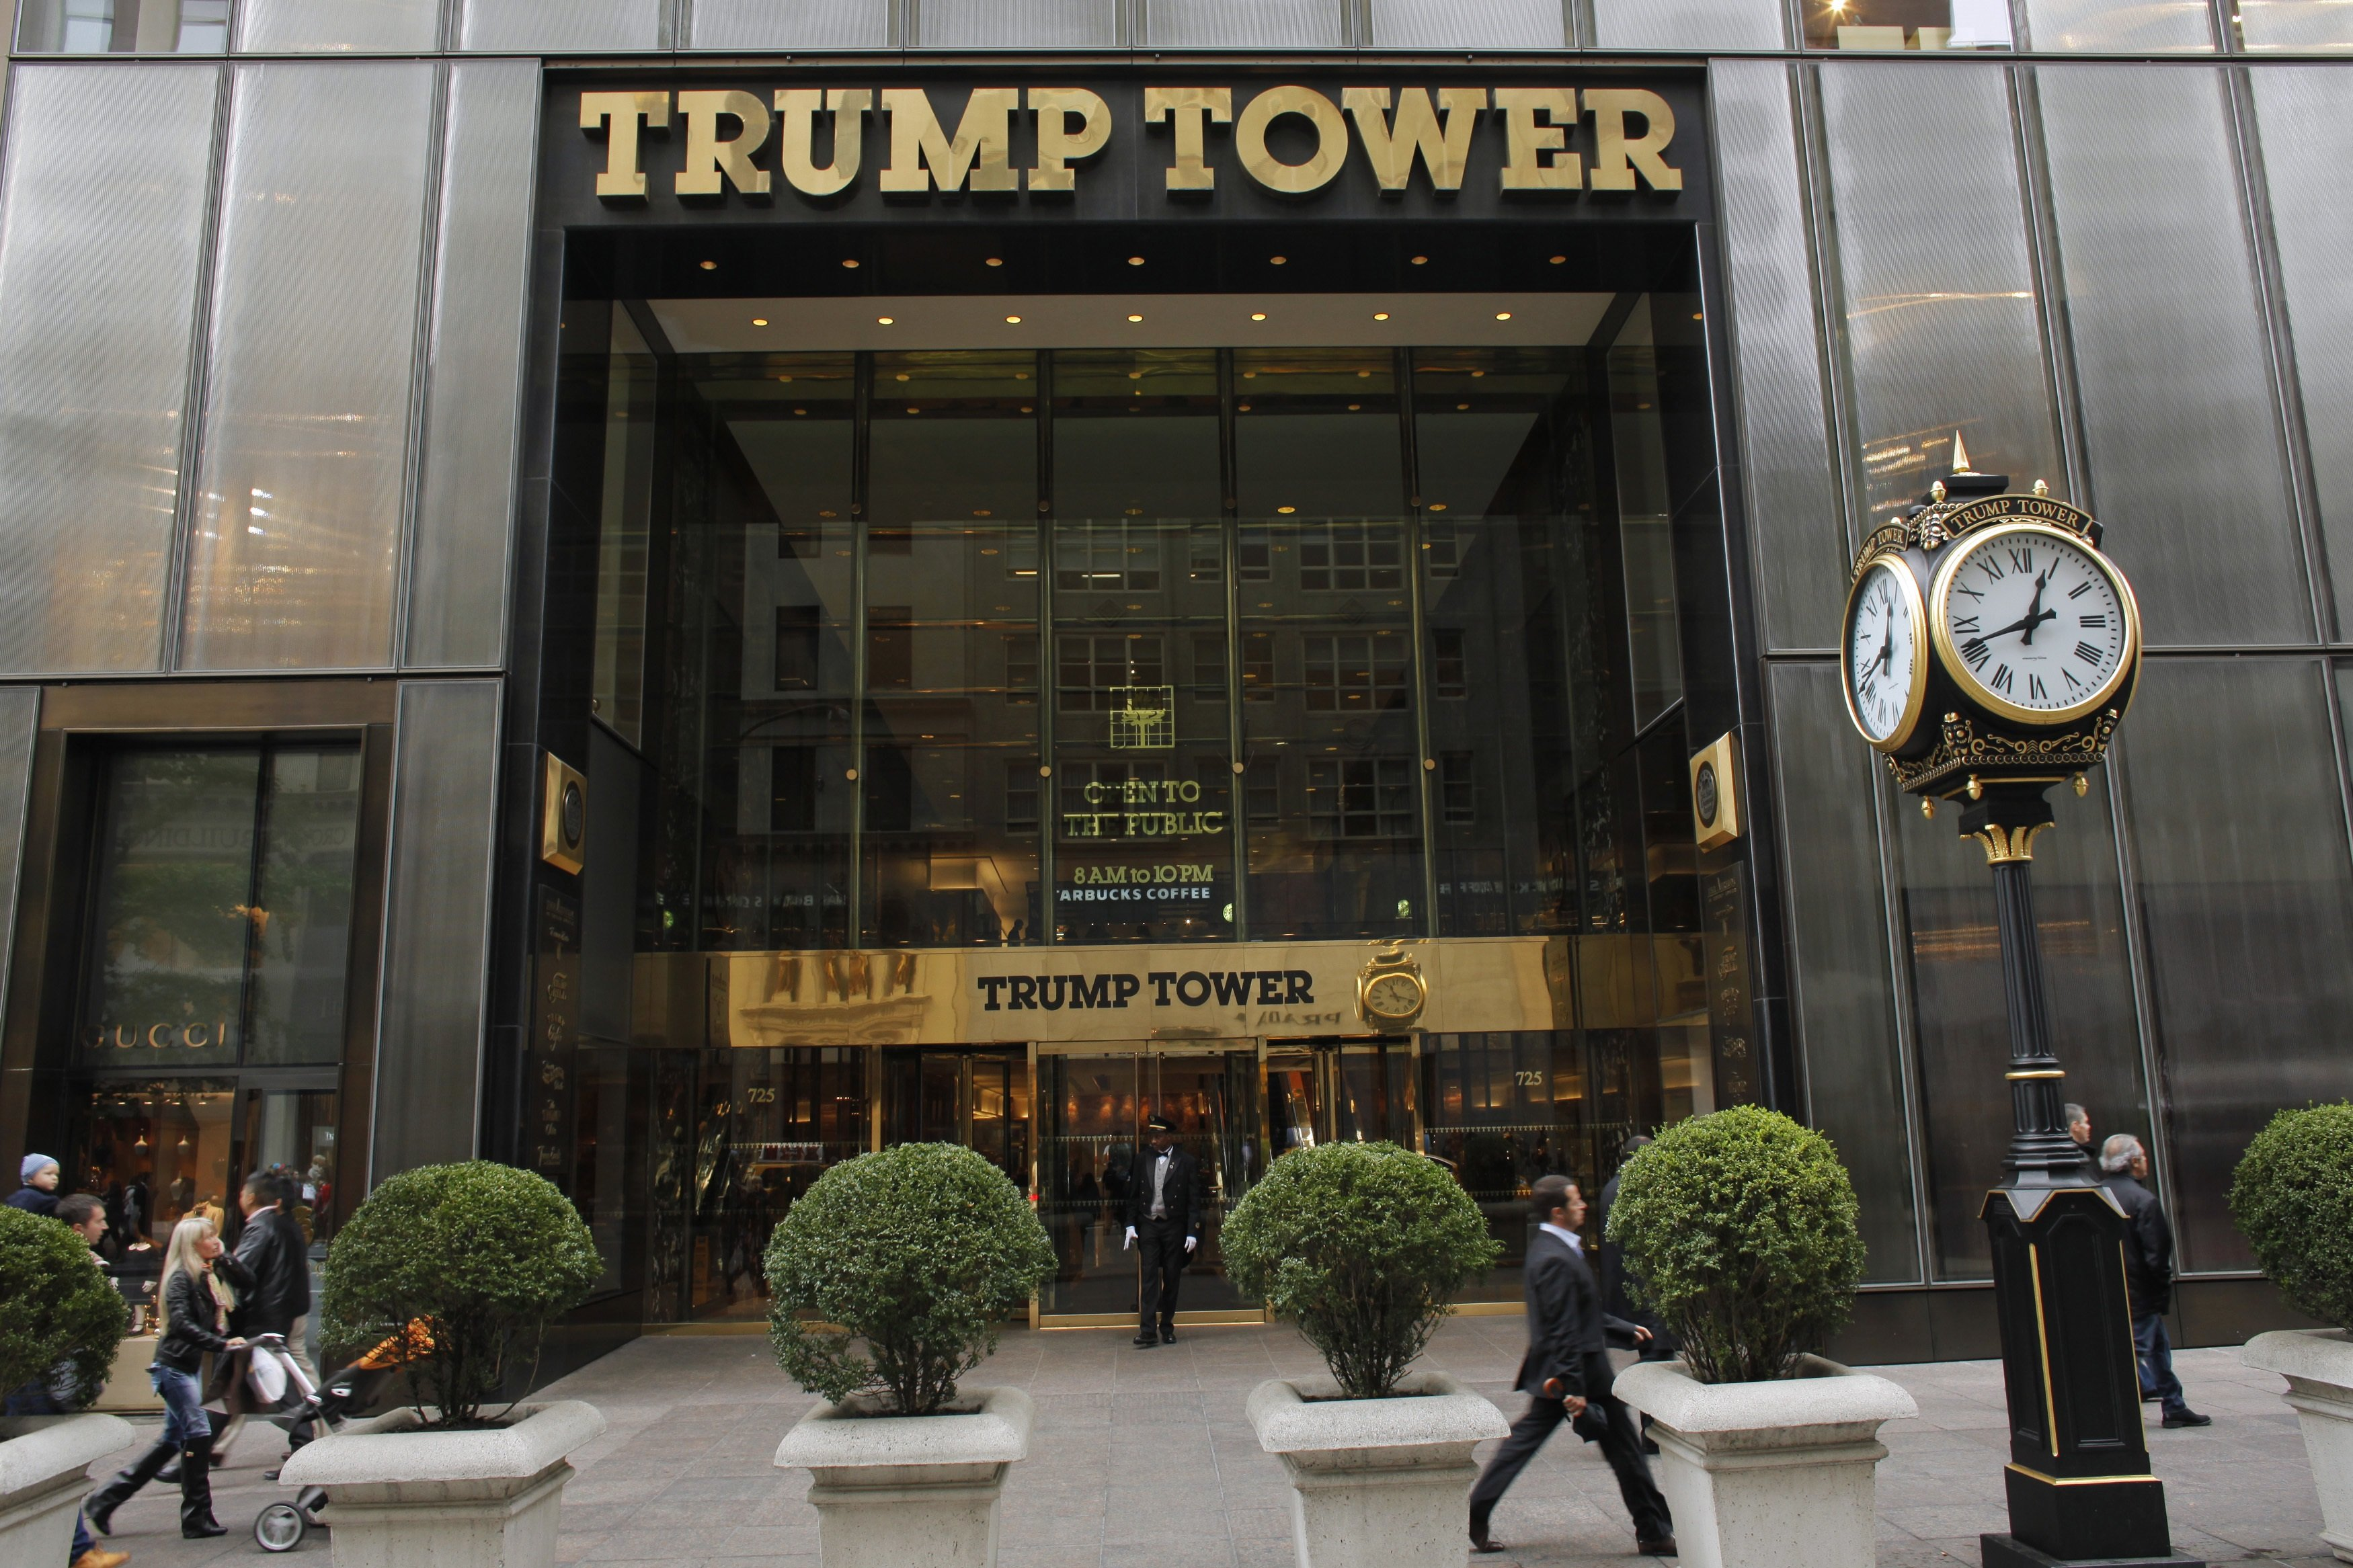 People walk in front of the Trump Tower in New York October 24, 2012.  Donald Trump offered to pay $5 million to the charity of President Barack Obama's choice if Obama releases his college and passport records, the real estate mogul and television personality said on Wednesday. REUTERS/Eduardo Munoz (UNITED STATES - Tags: POLITICS BUSINESS) - RTR39J4Q